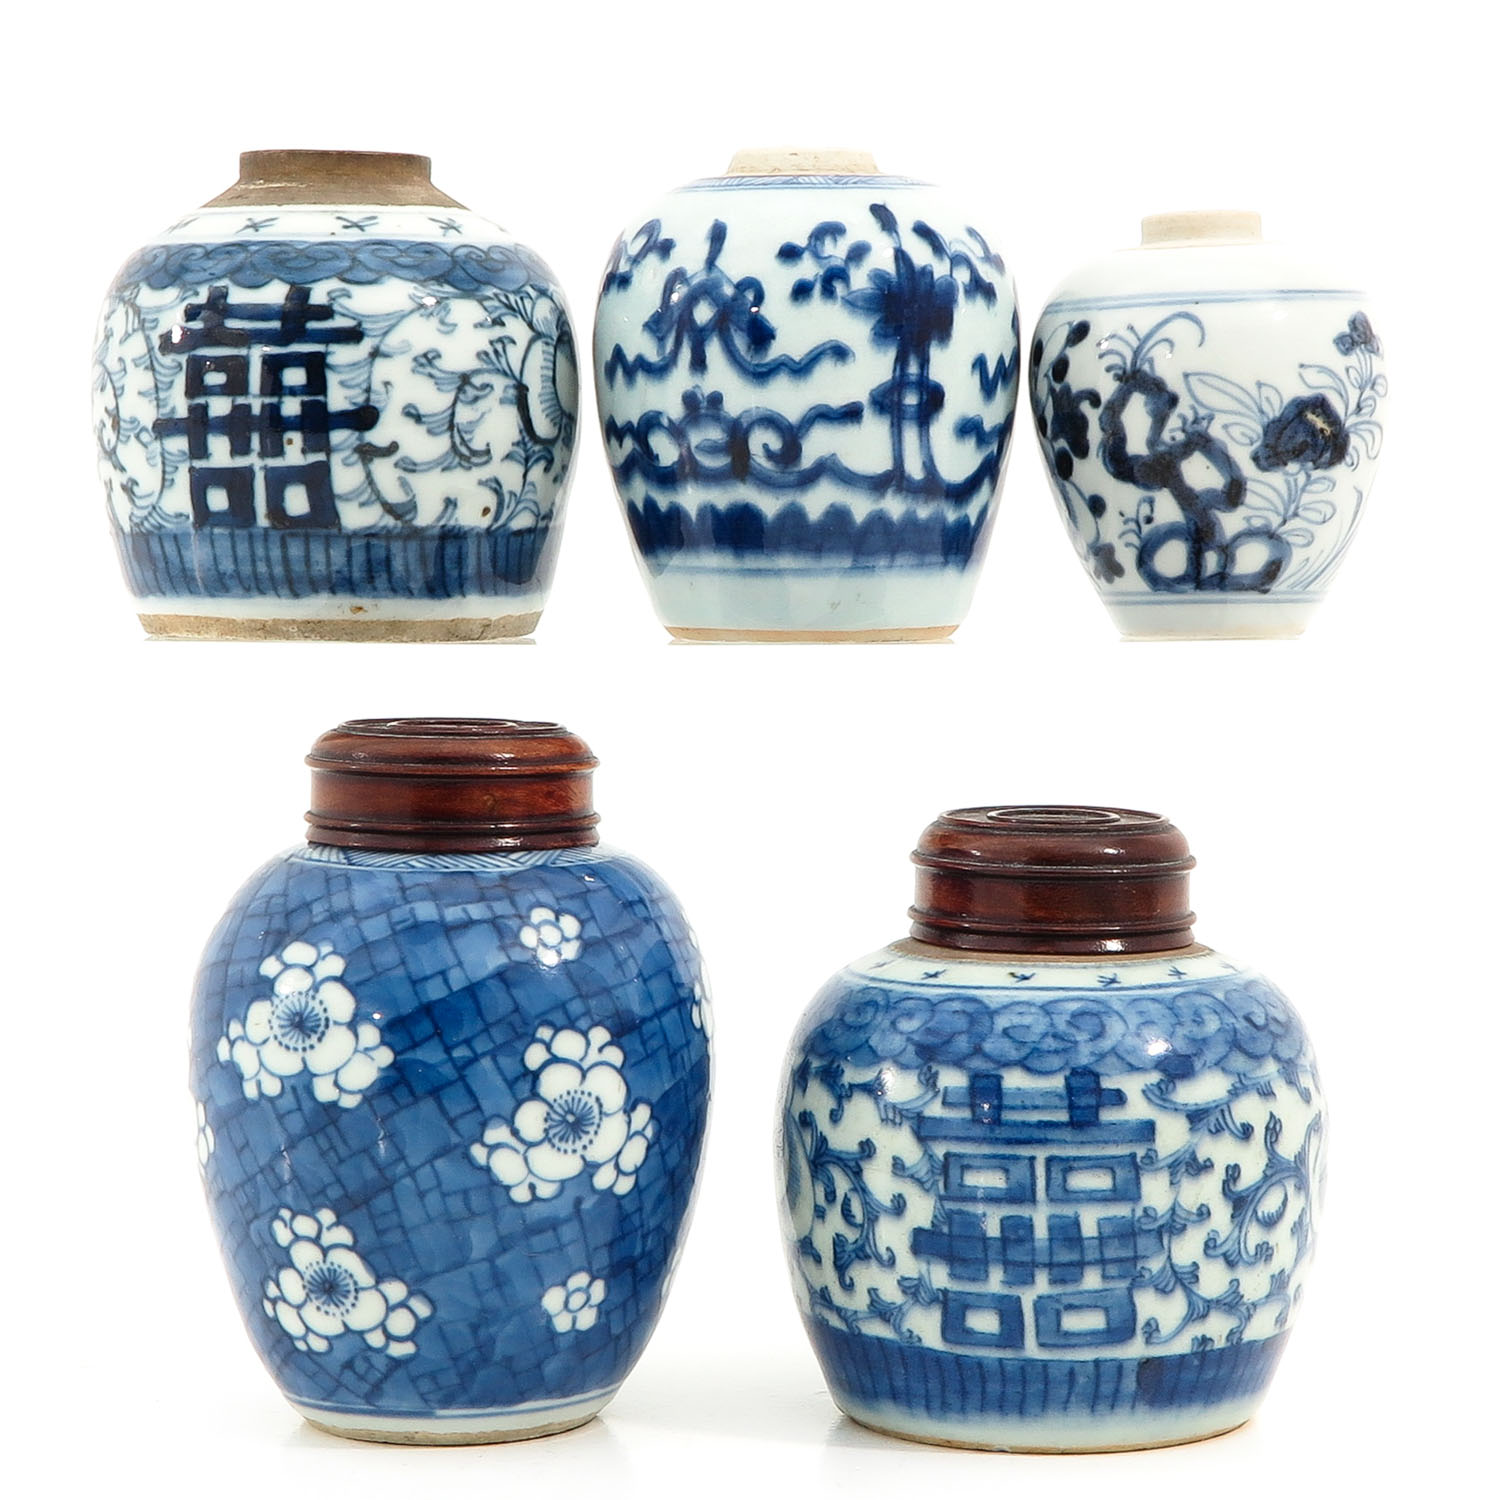 A Collection of 5 Ginger Jars - Image 2 of 10